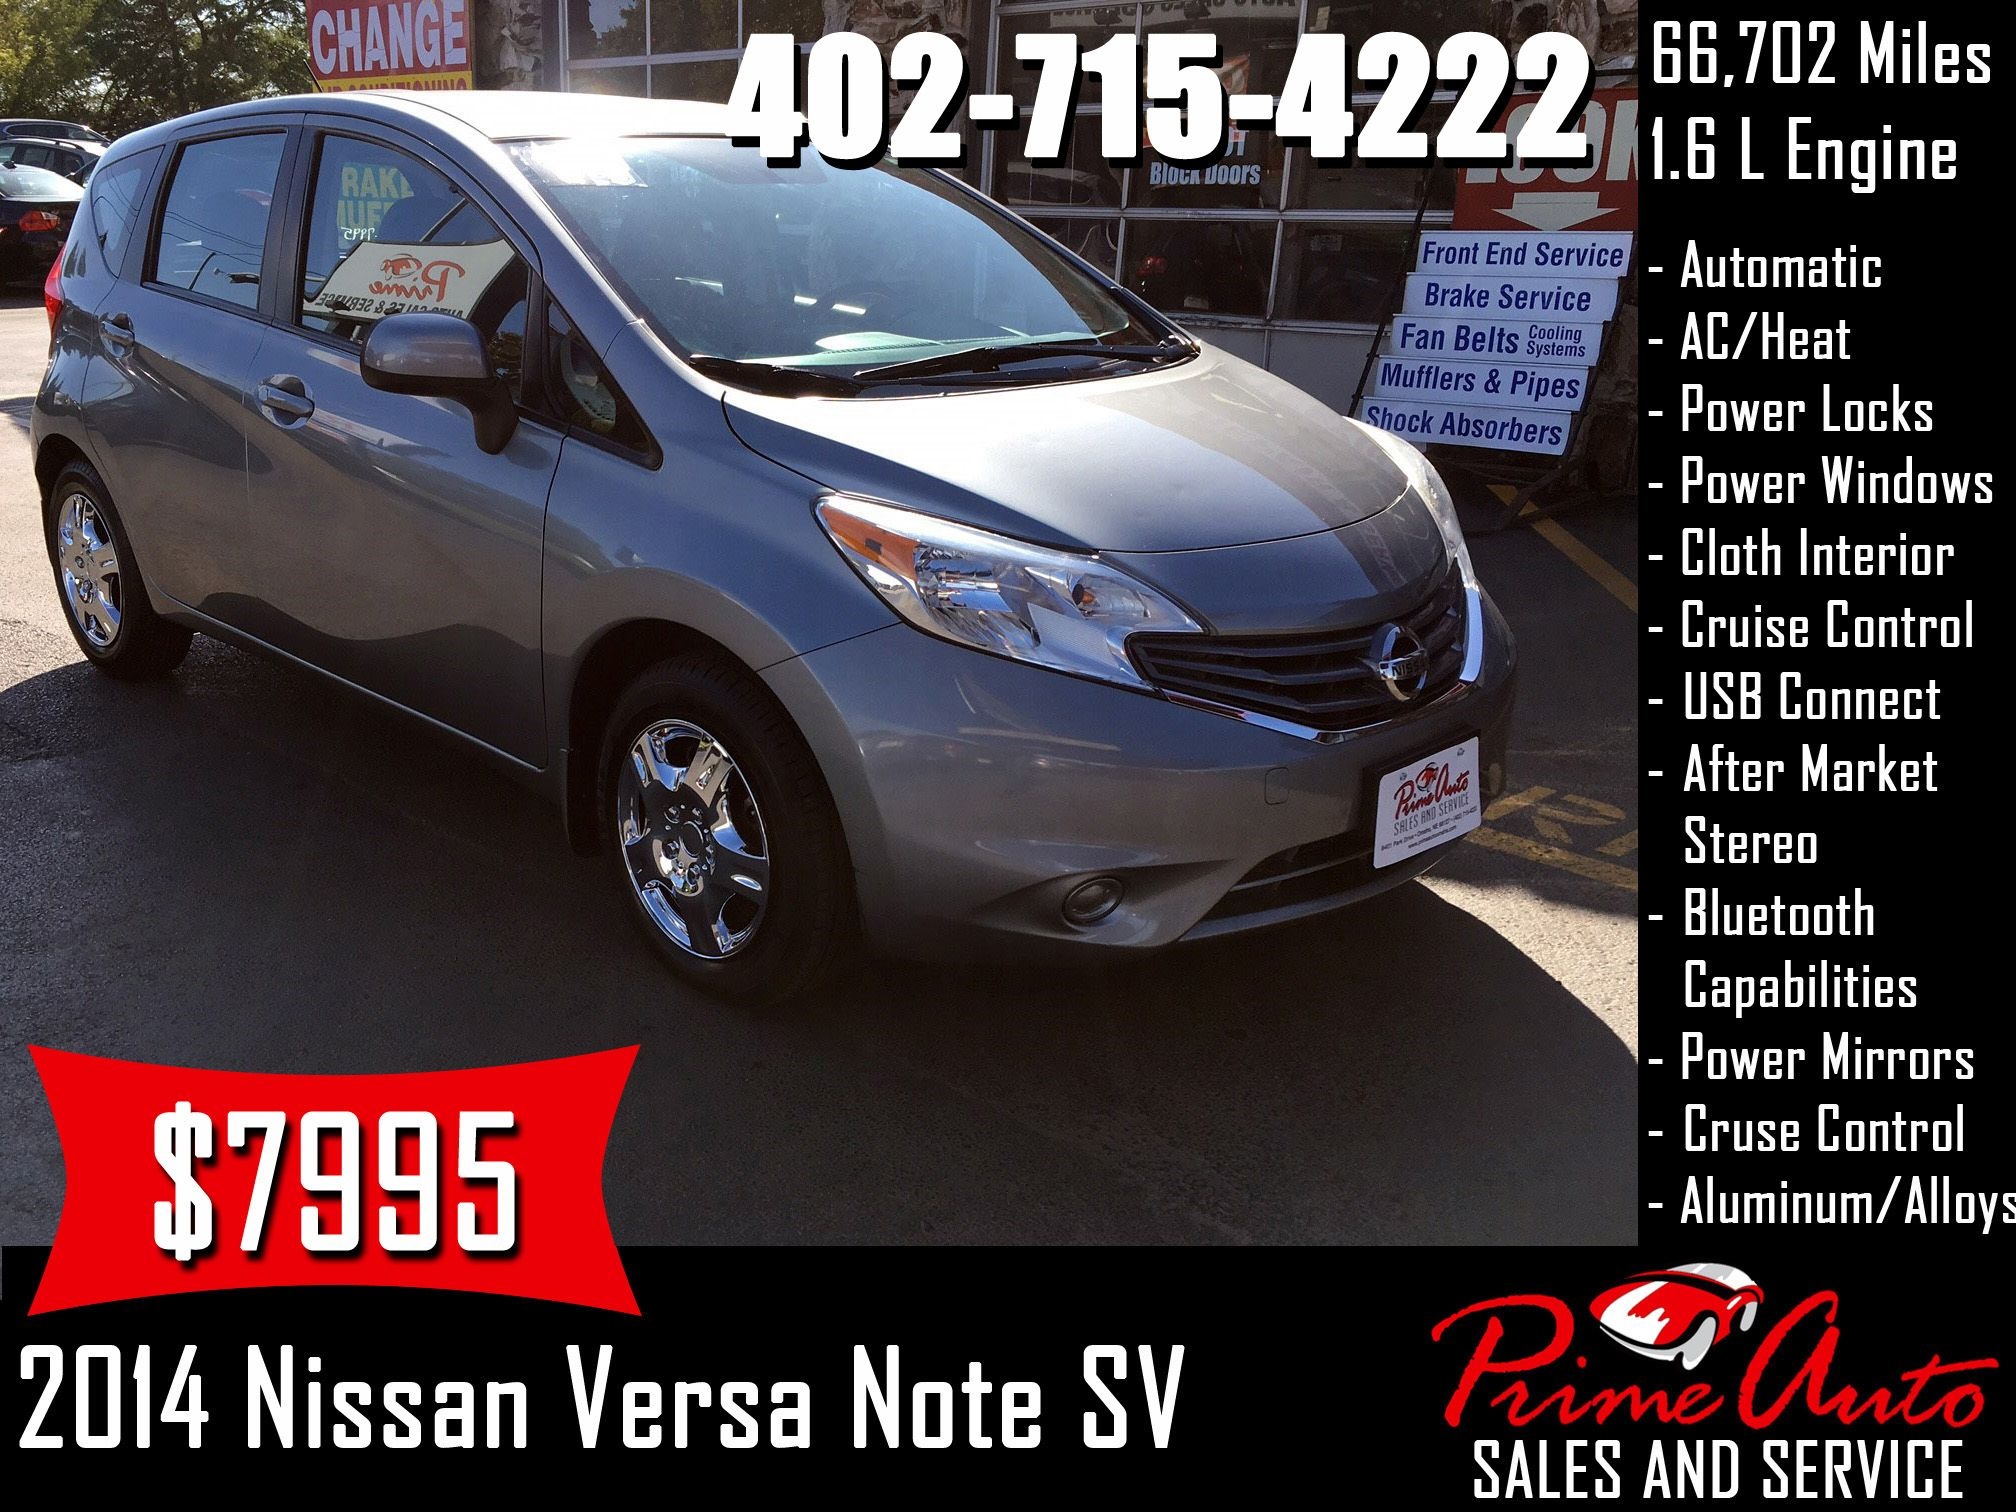 2014 Nissan Versa Note Cv Call Us Today 402 715 4222 Nissan Versa Note Hatchback Cars Auto Omaha Carsforsale Buyme Prime In 2020 Nissan Versa Ac Heating